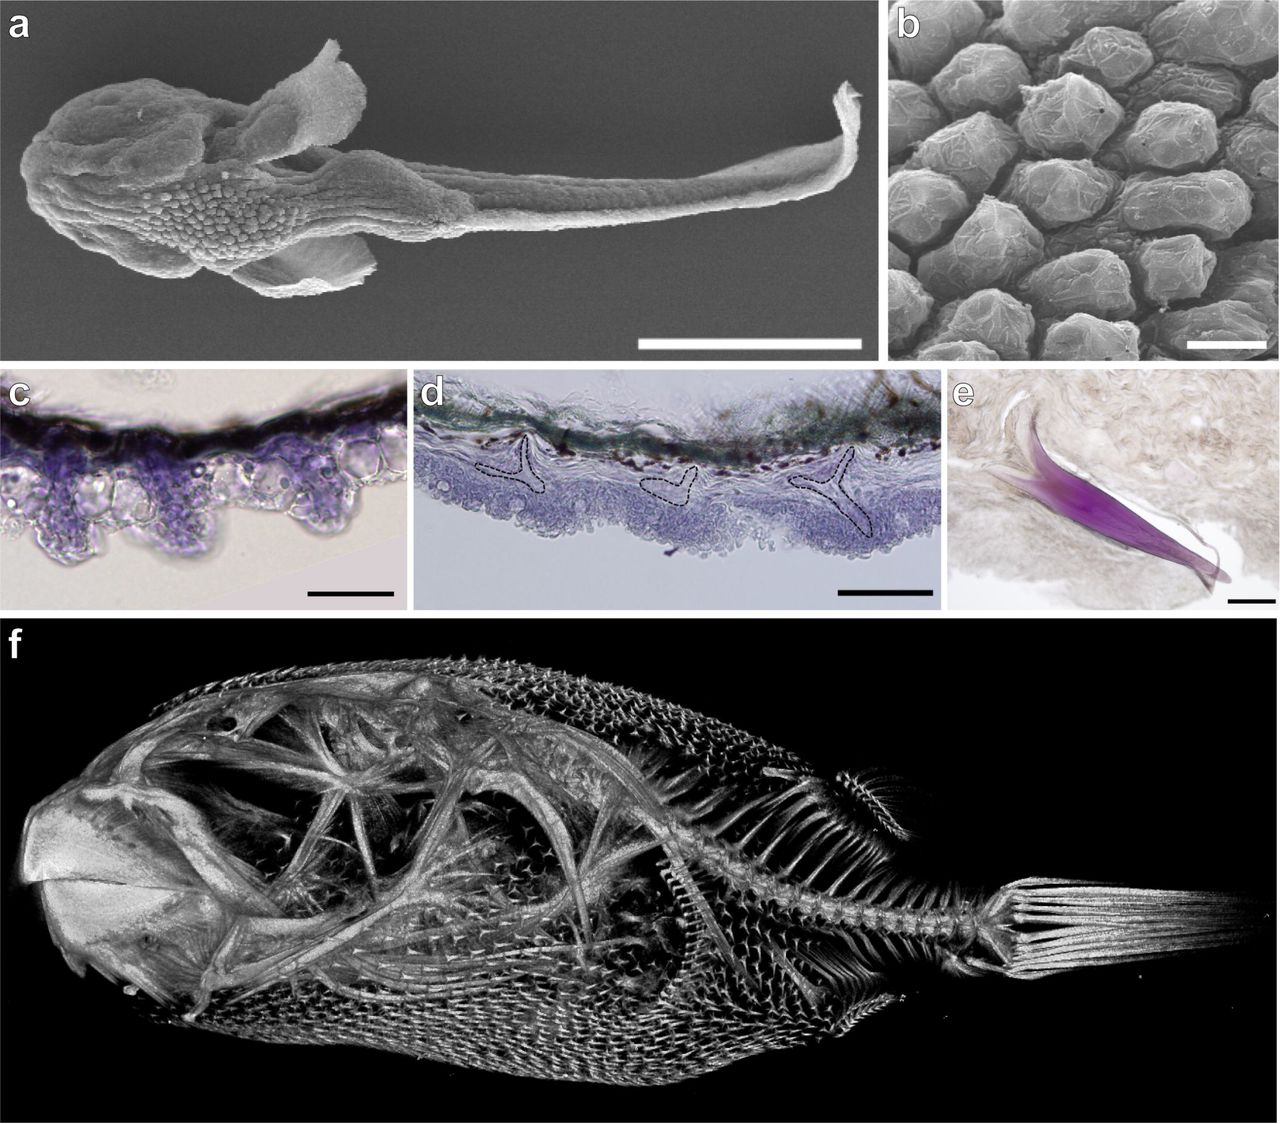 2966d8abf8f7 evolution and developmental diversity of skin spines in pufferfishFossil Fossil  3077 S Schwarz P 514 #